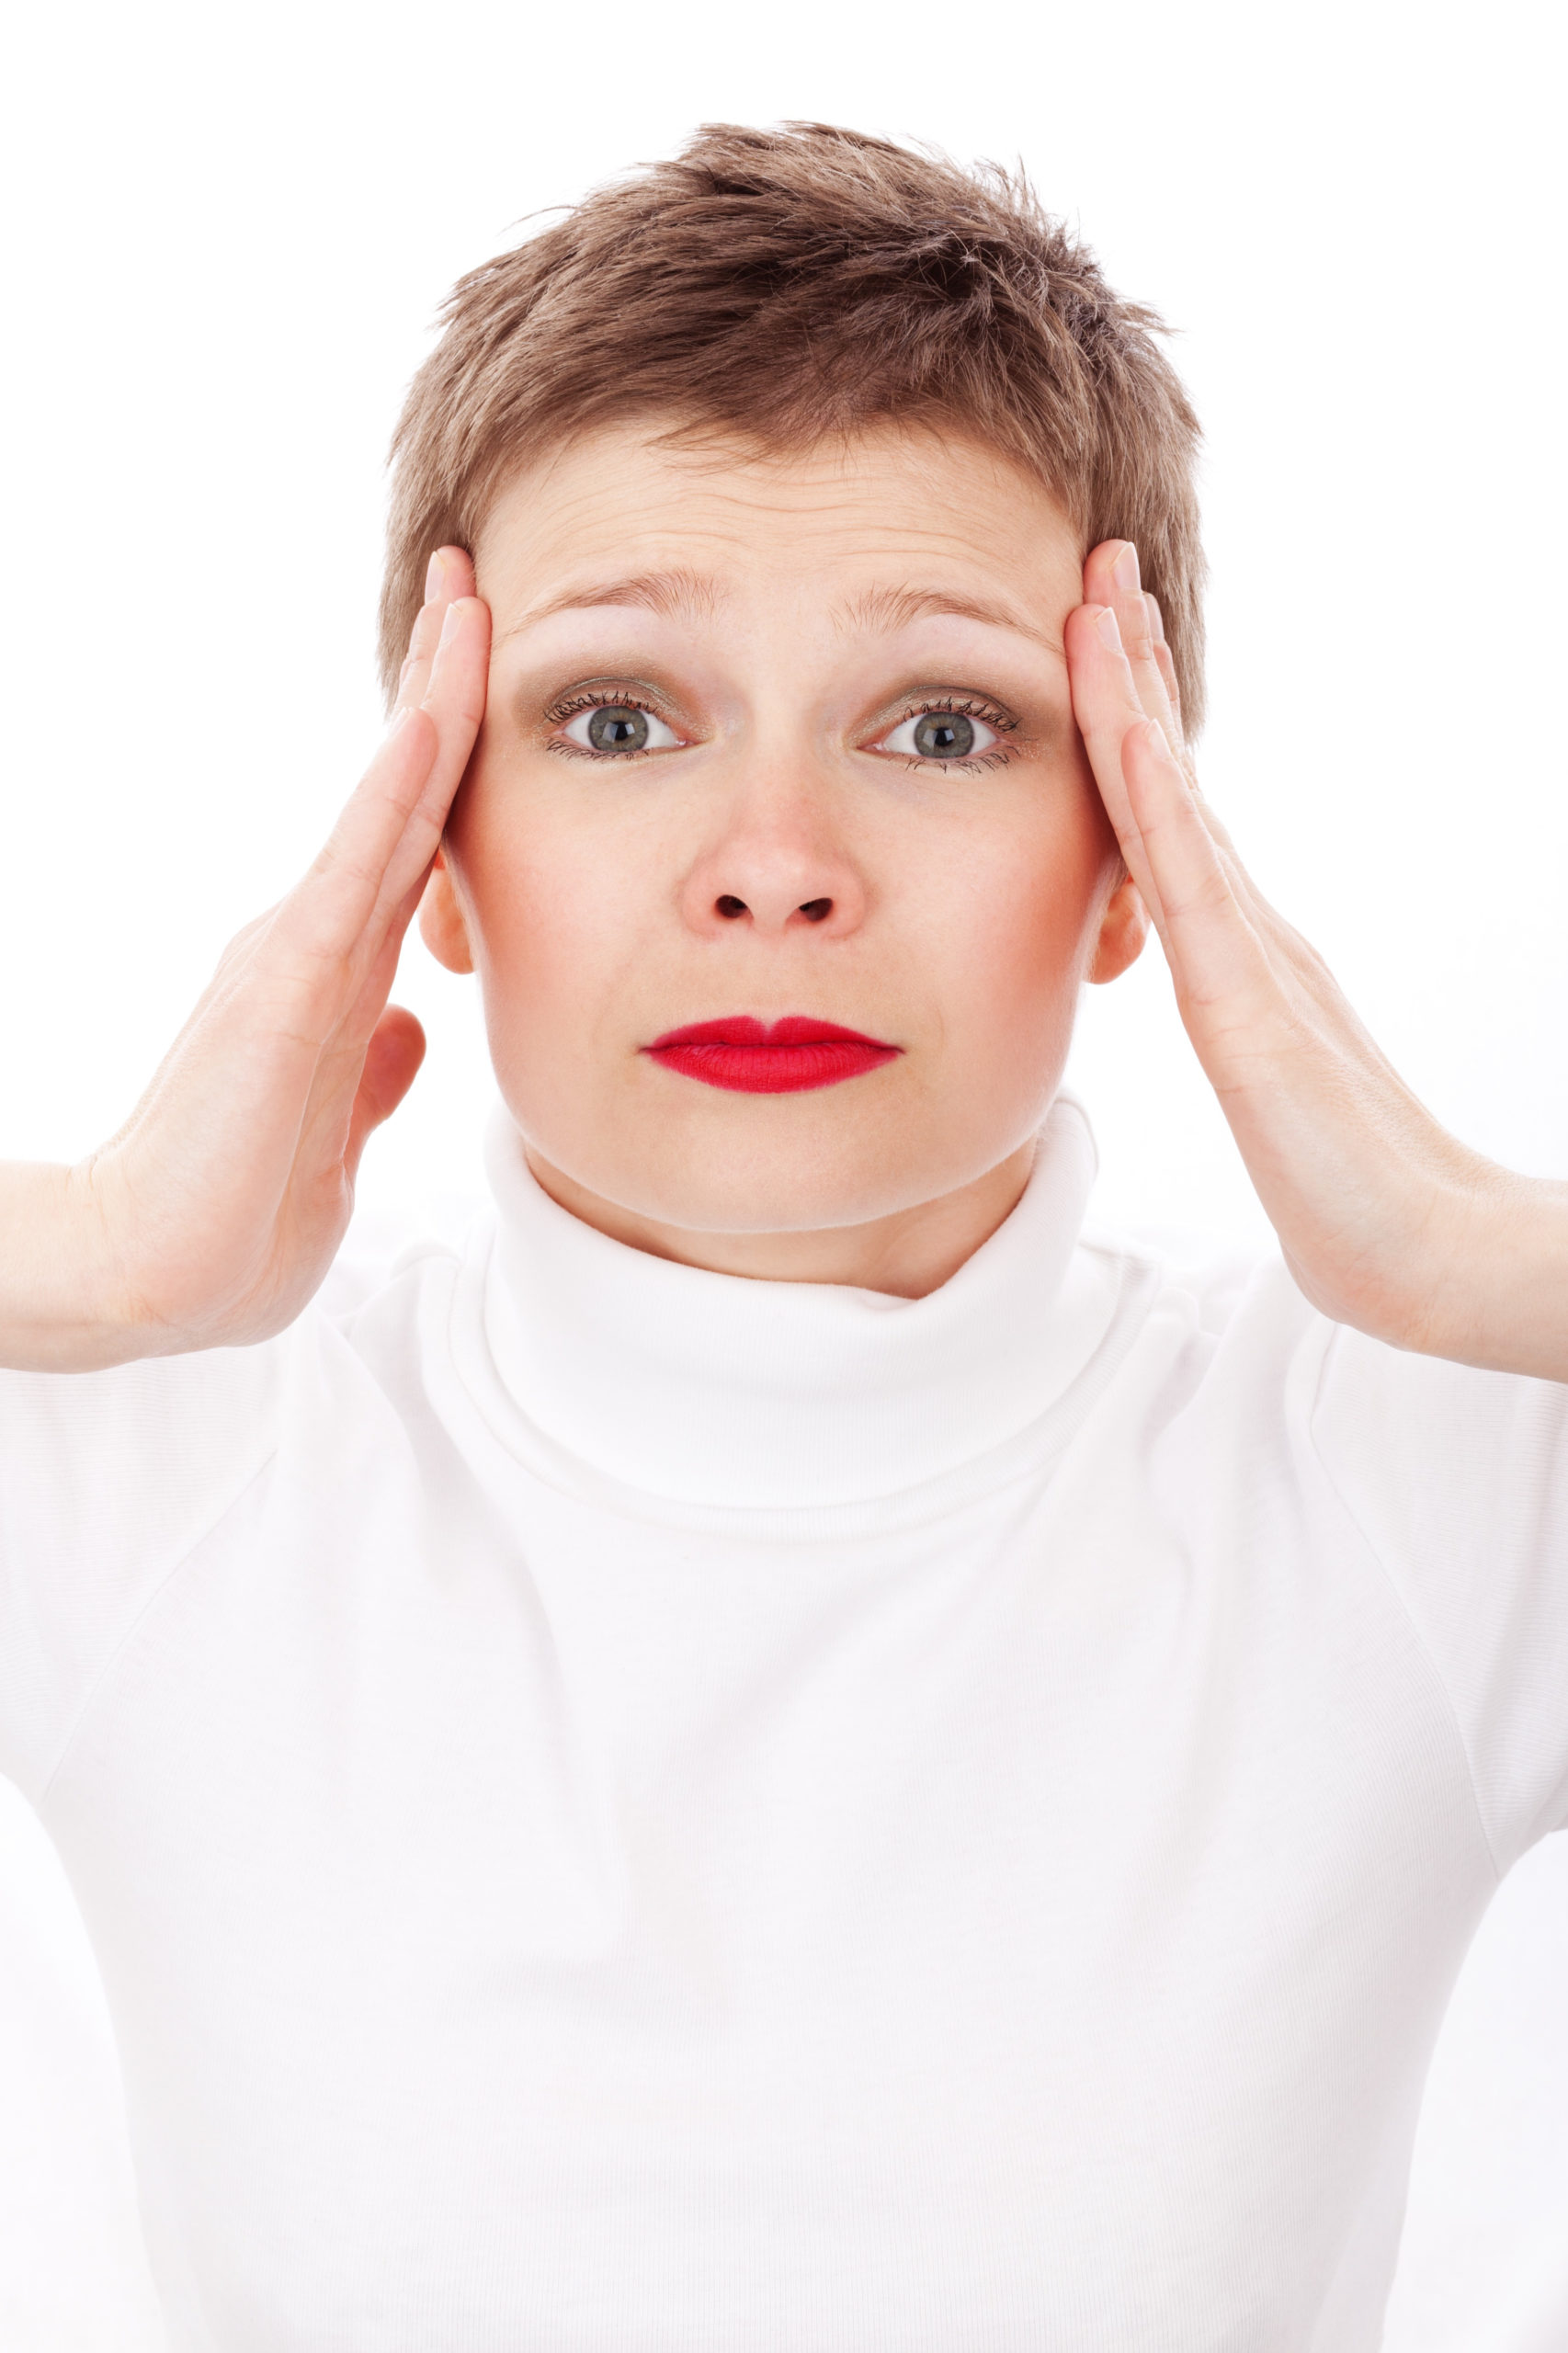 woman with headache. Maple Grove Eye Doctors at Pearle Vision